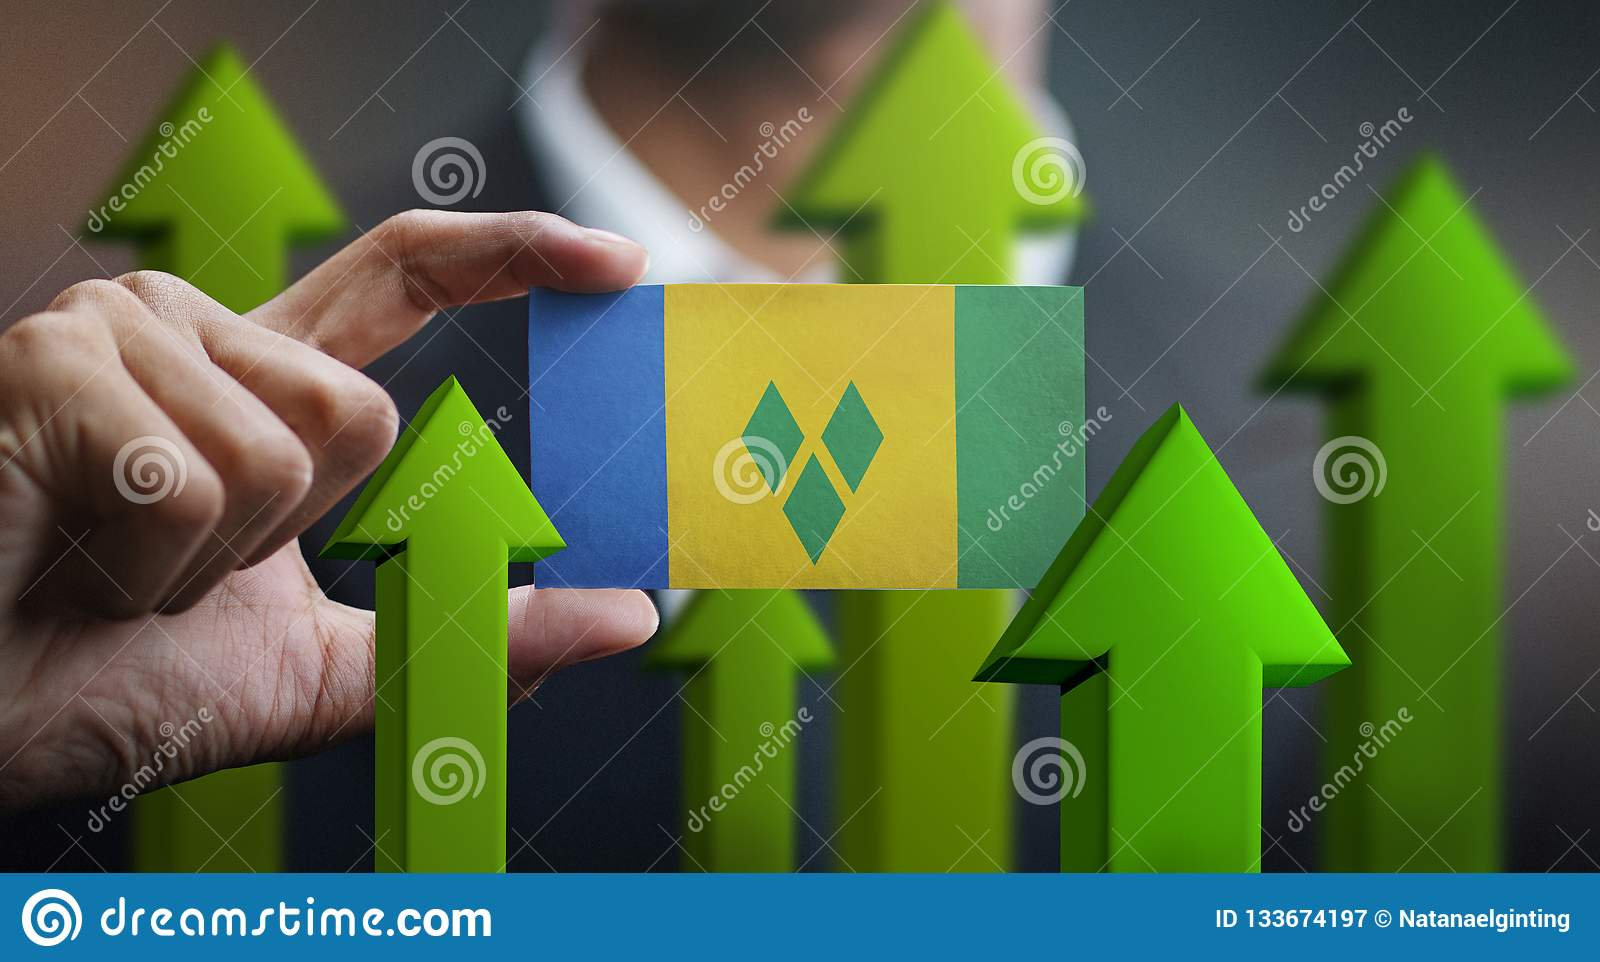 Nation Growth Concept, Green Up Arrows - Businessman Holding Car